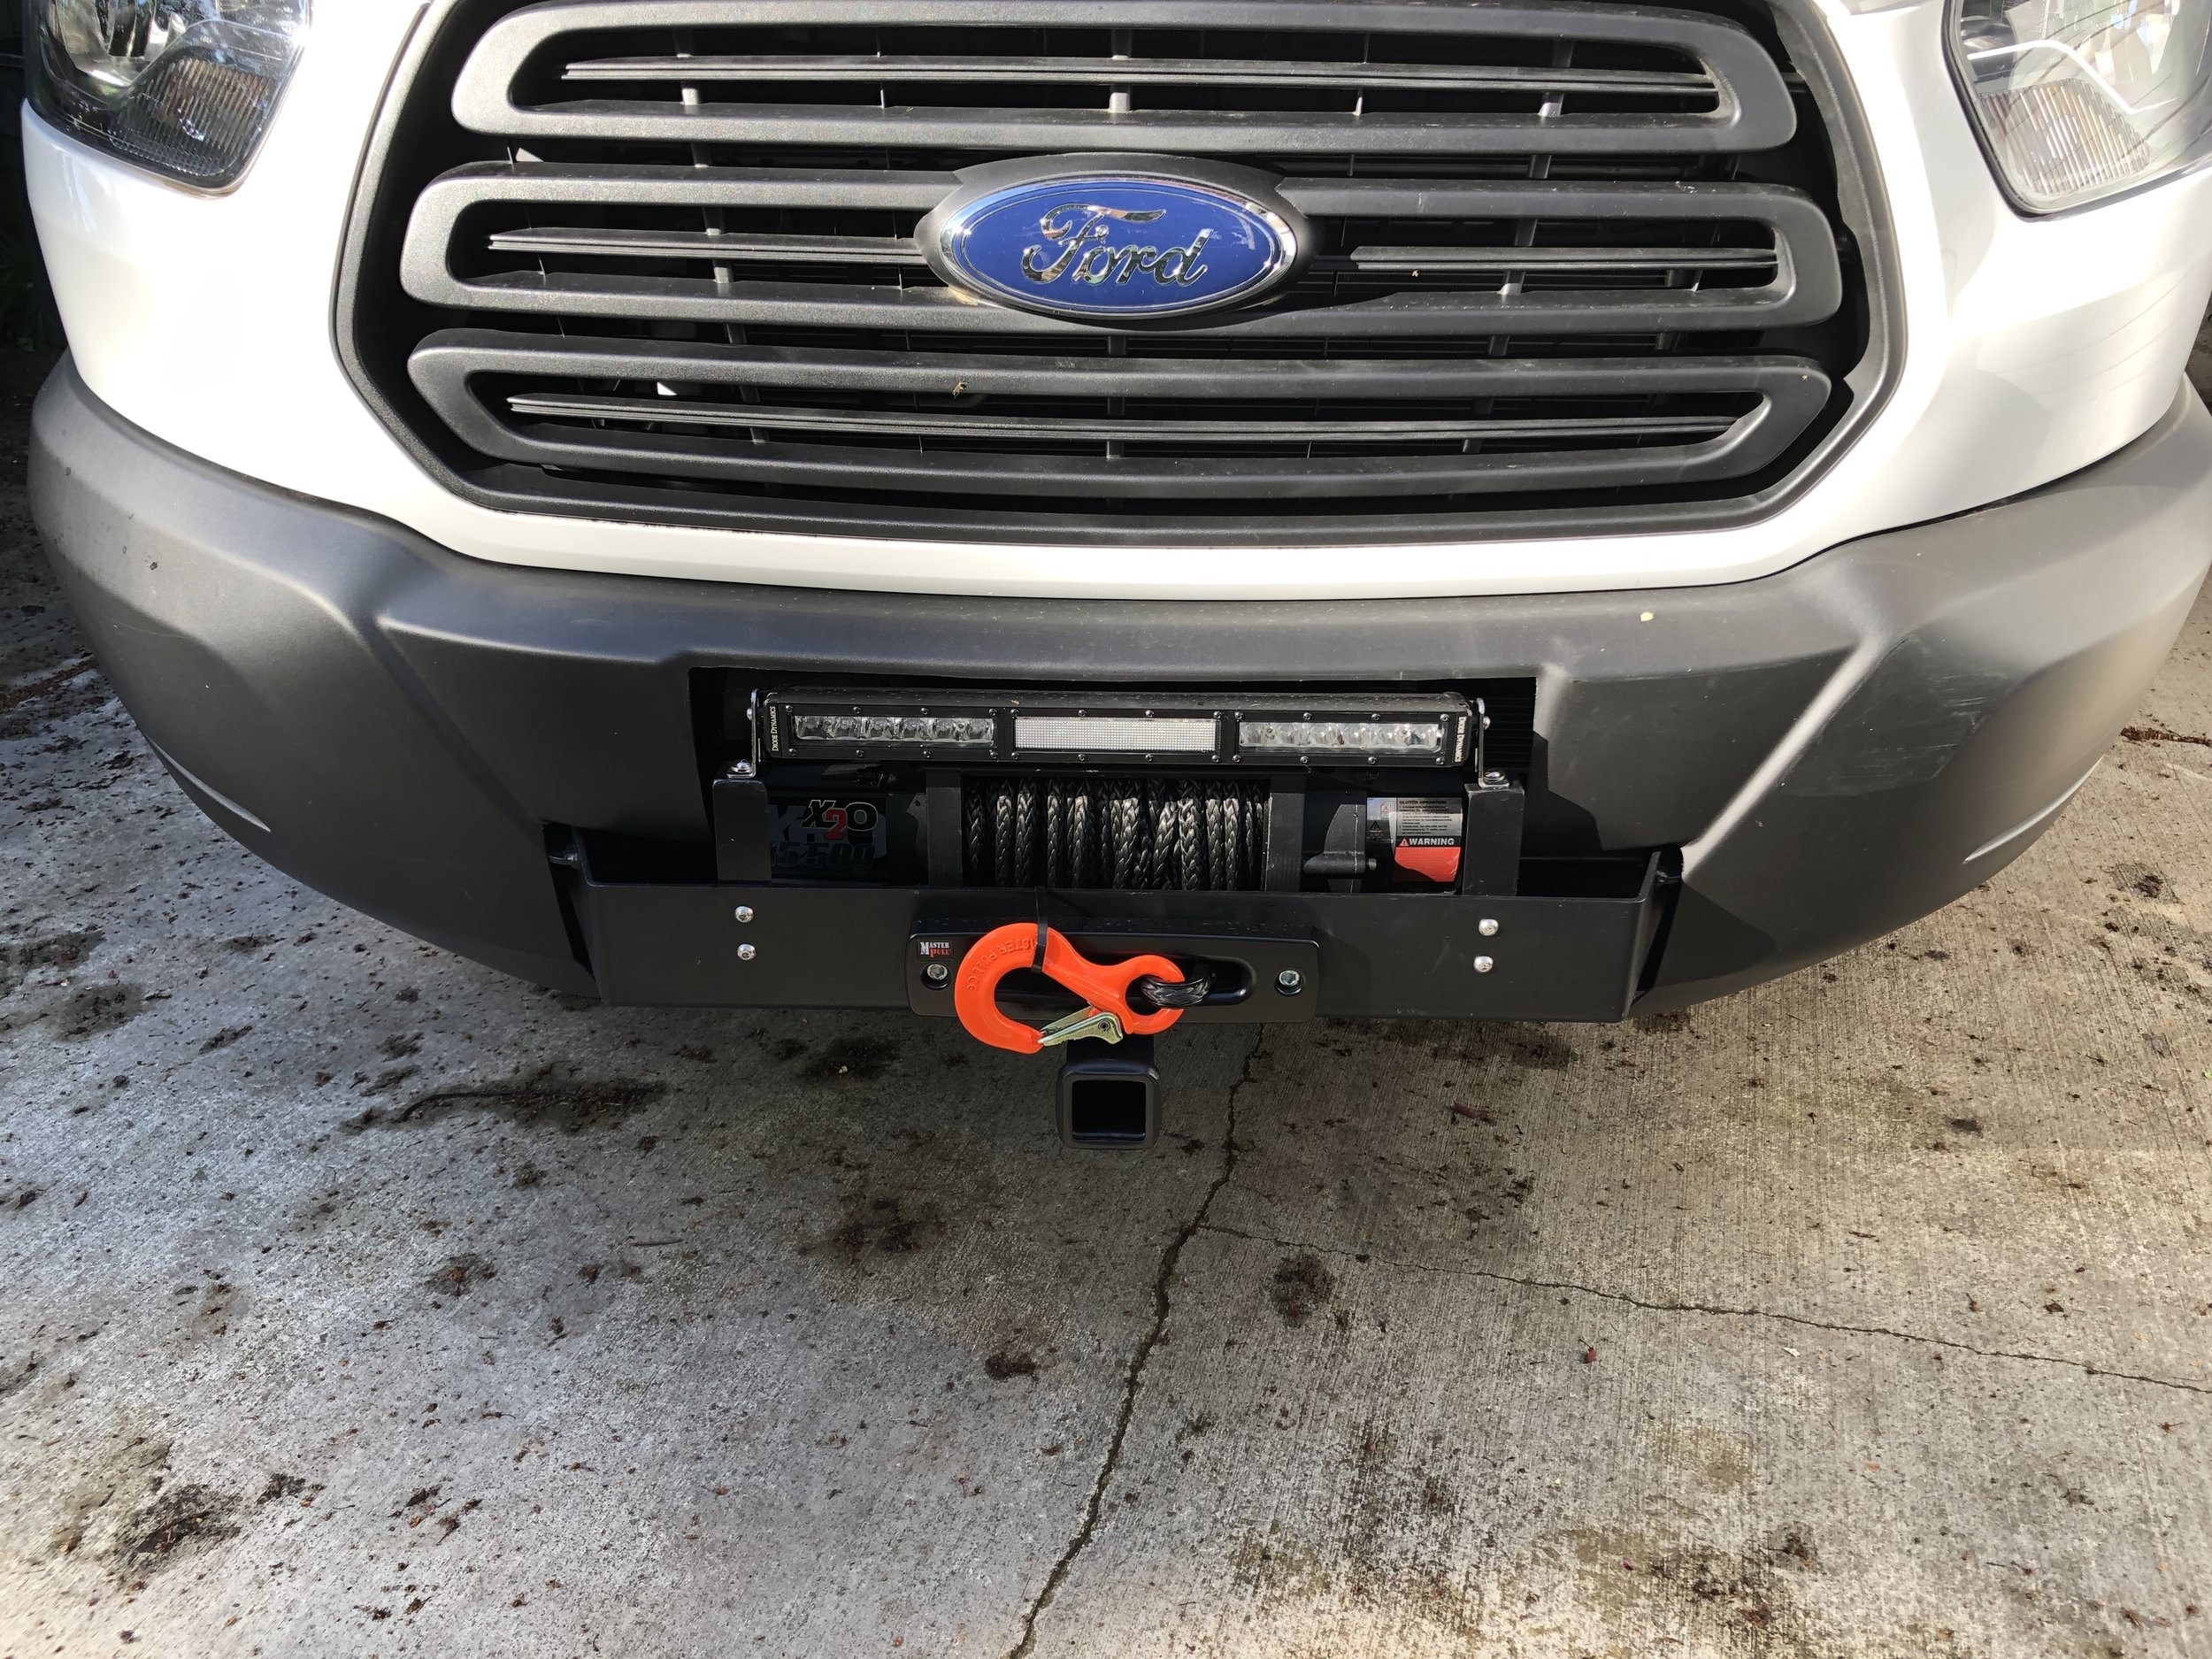 Van Compass hitch receiver, SmittyBilt winch